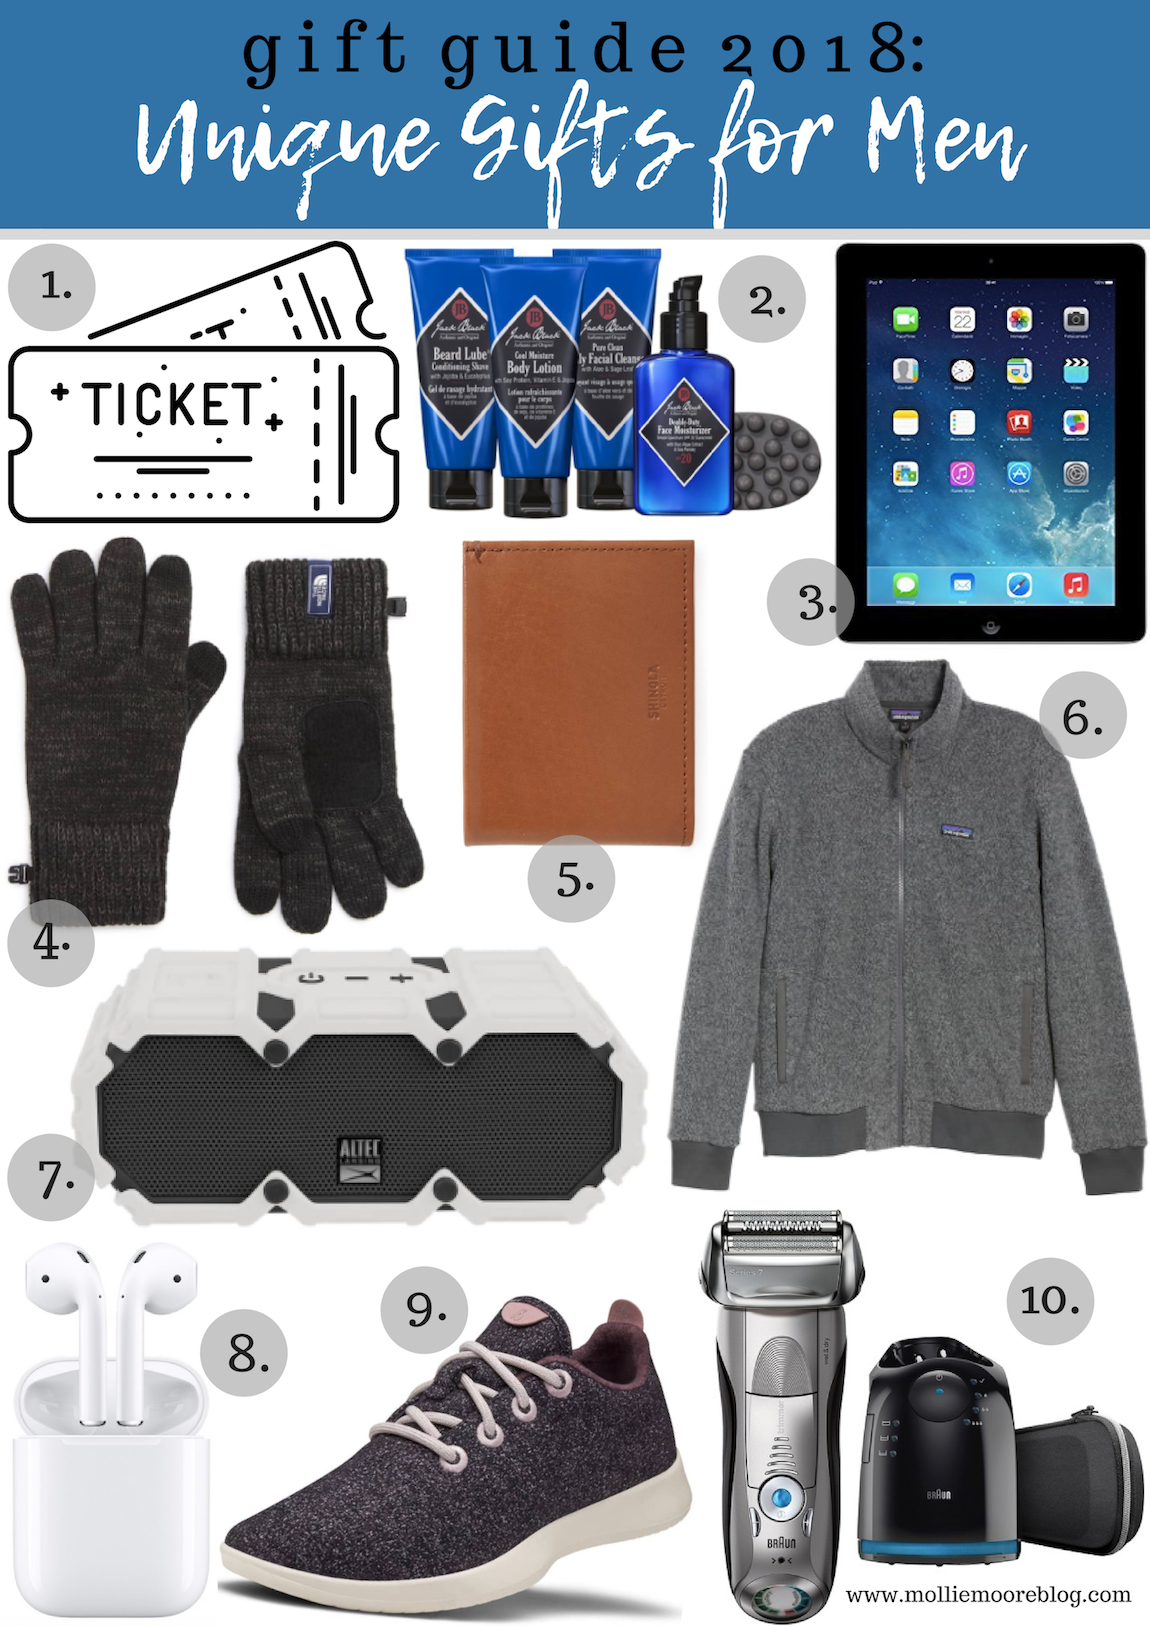 Lifestyle blogger Mollie Moore shares her top 10 unique gift ideas for men